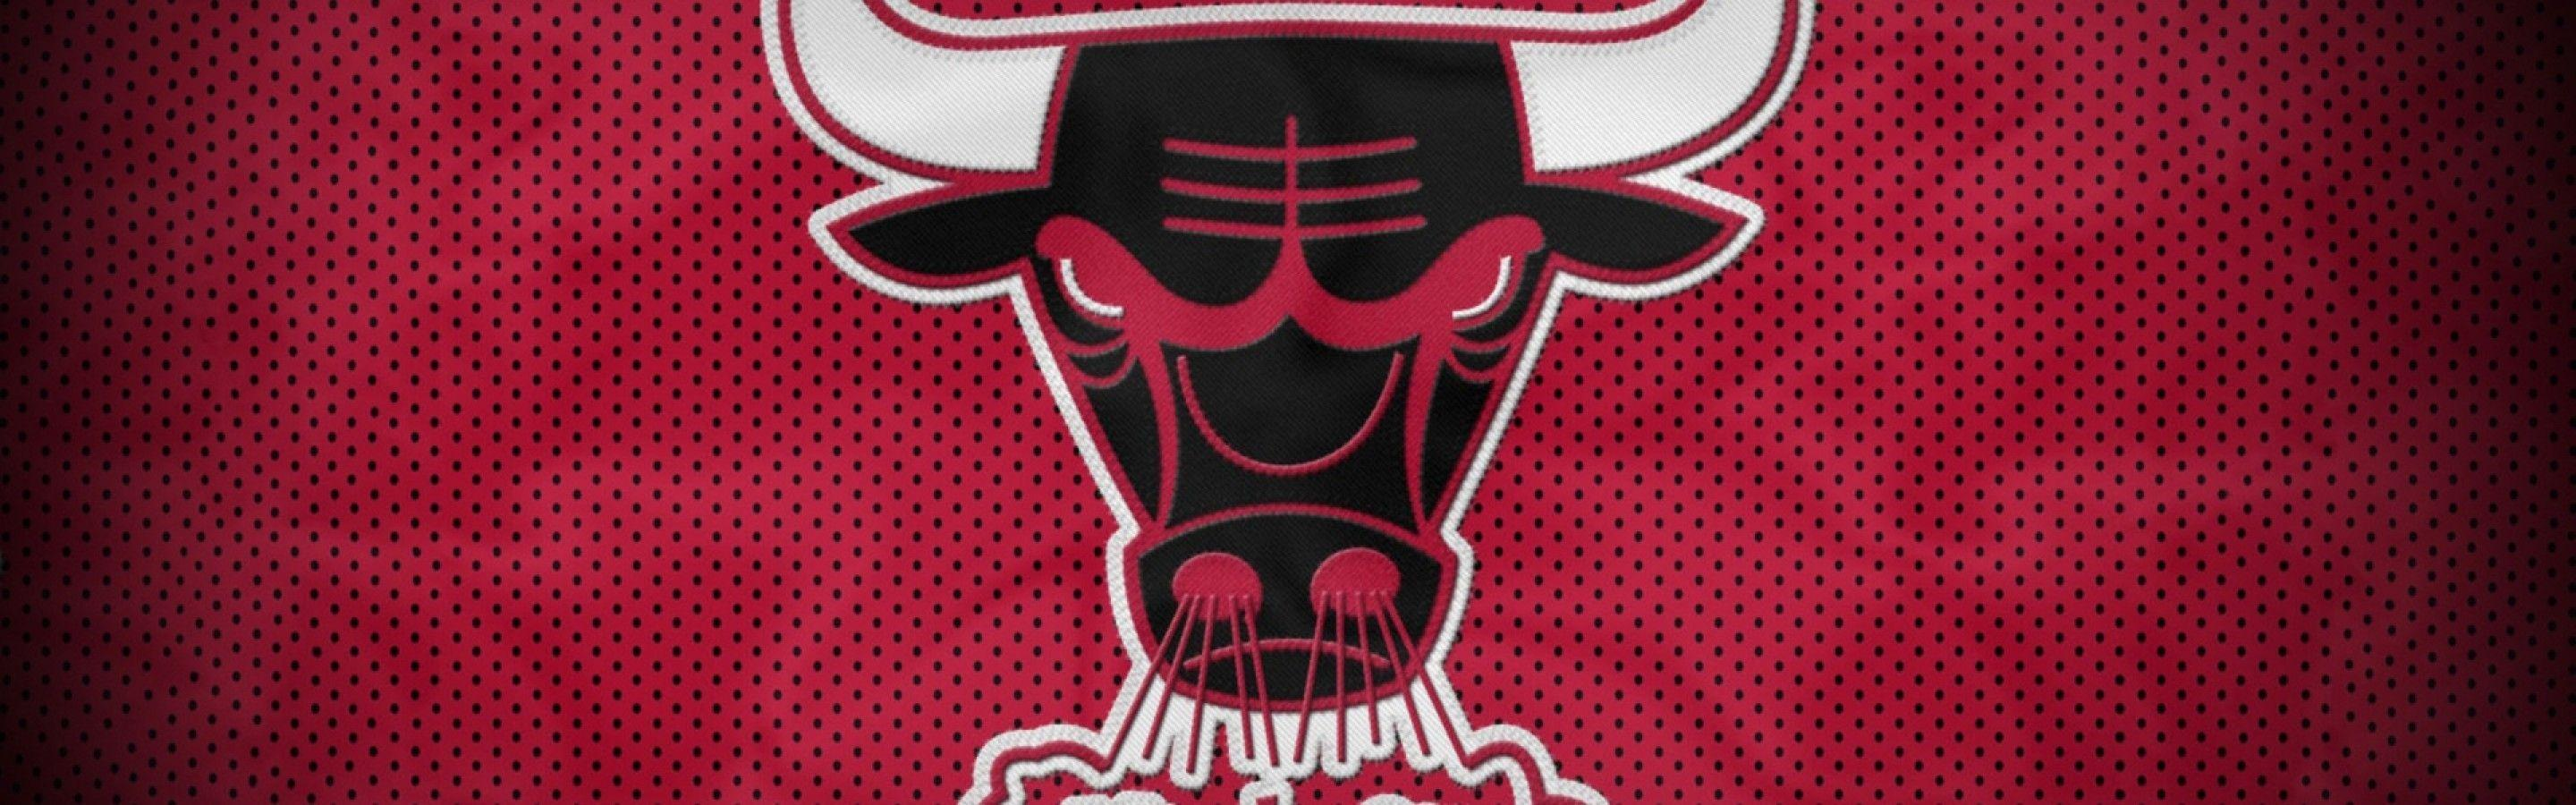 Chicago Bulls Logo 72 99375 Images HD Wallpapers| Wallfoy.com